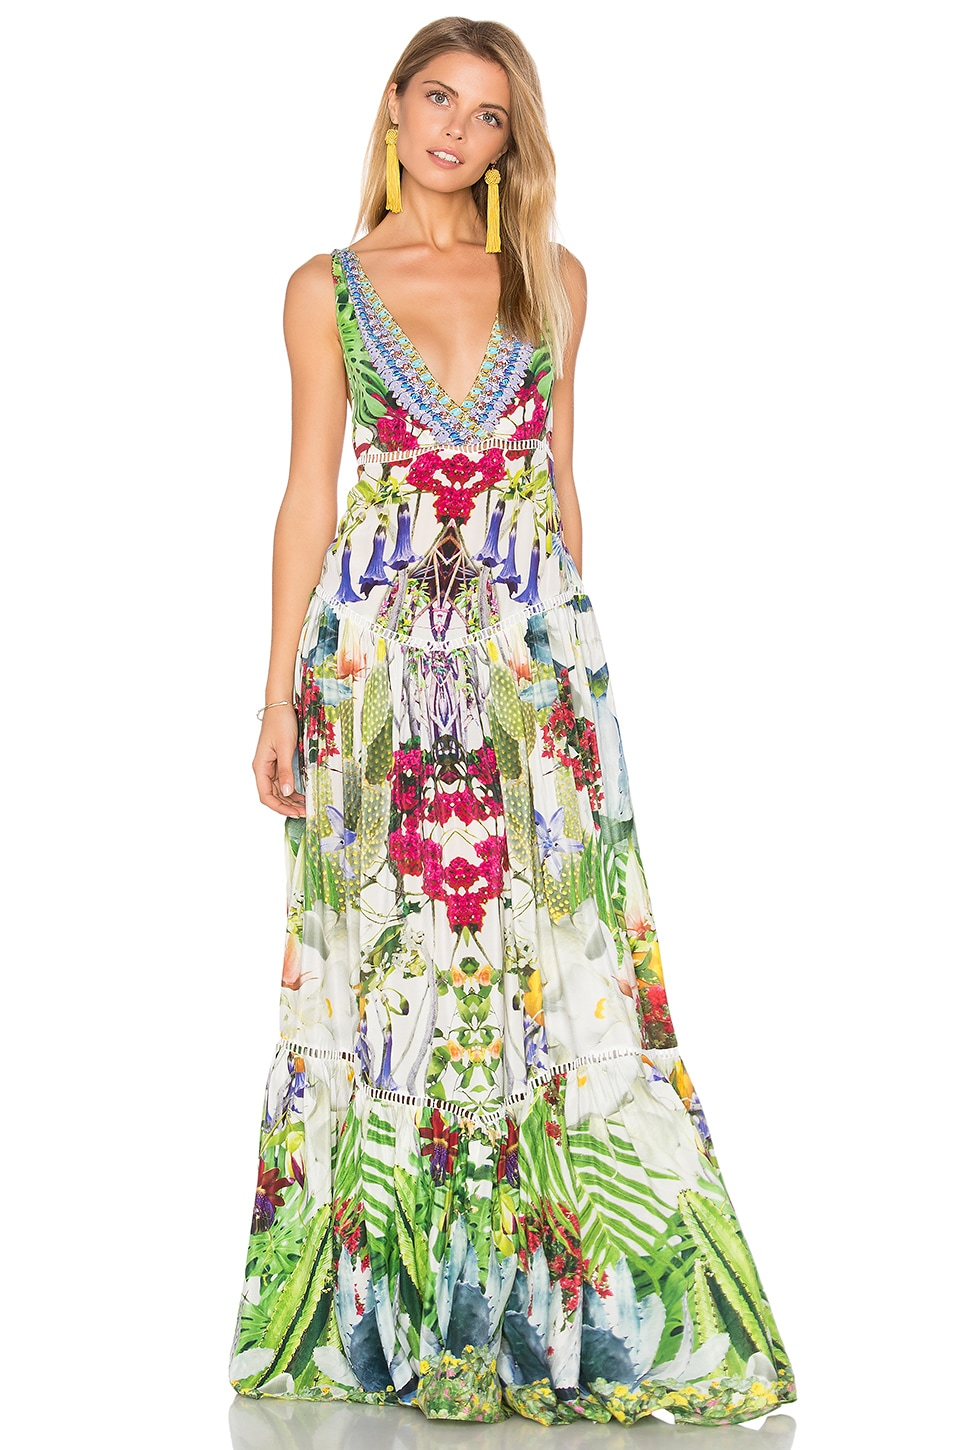 Camilla Tiered Gathered Dress in Exotic Hypnotic